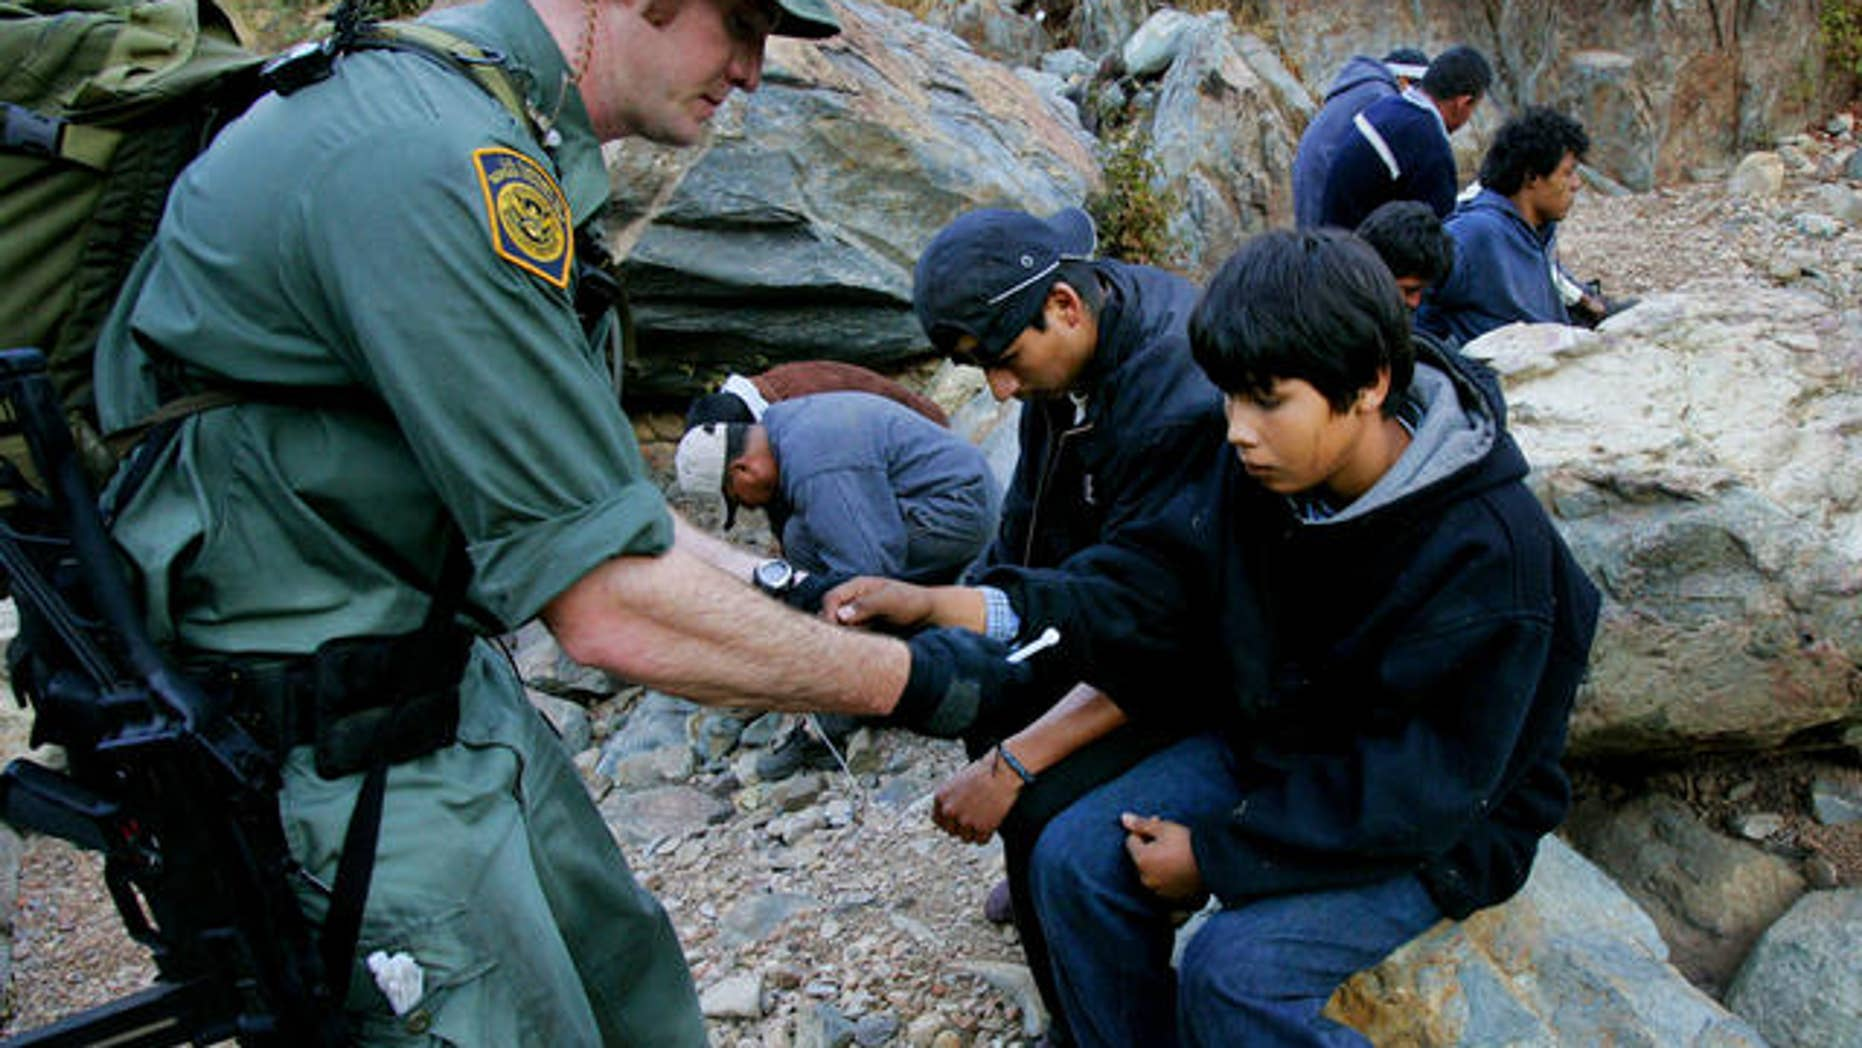 Border patrol agent Jeff Mielke secures plastic handcuffs on a group of undocumented immigrants caught in the Otay Mesa Mountain Range, just east of San Diego.